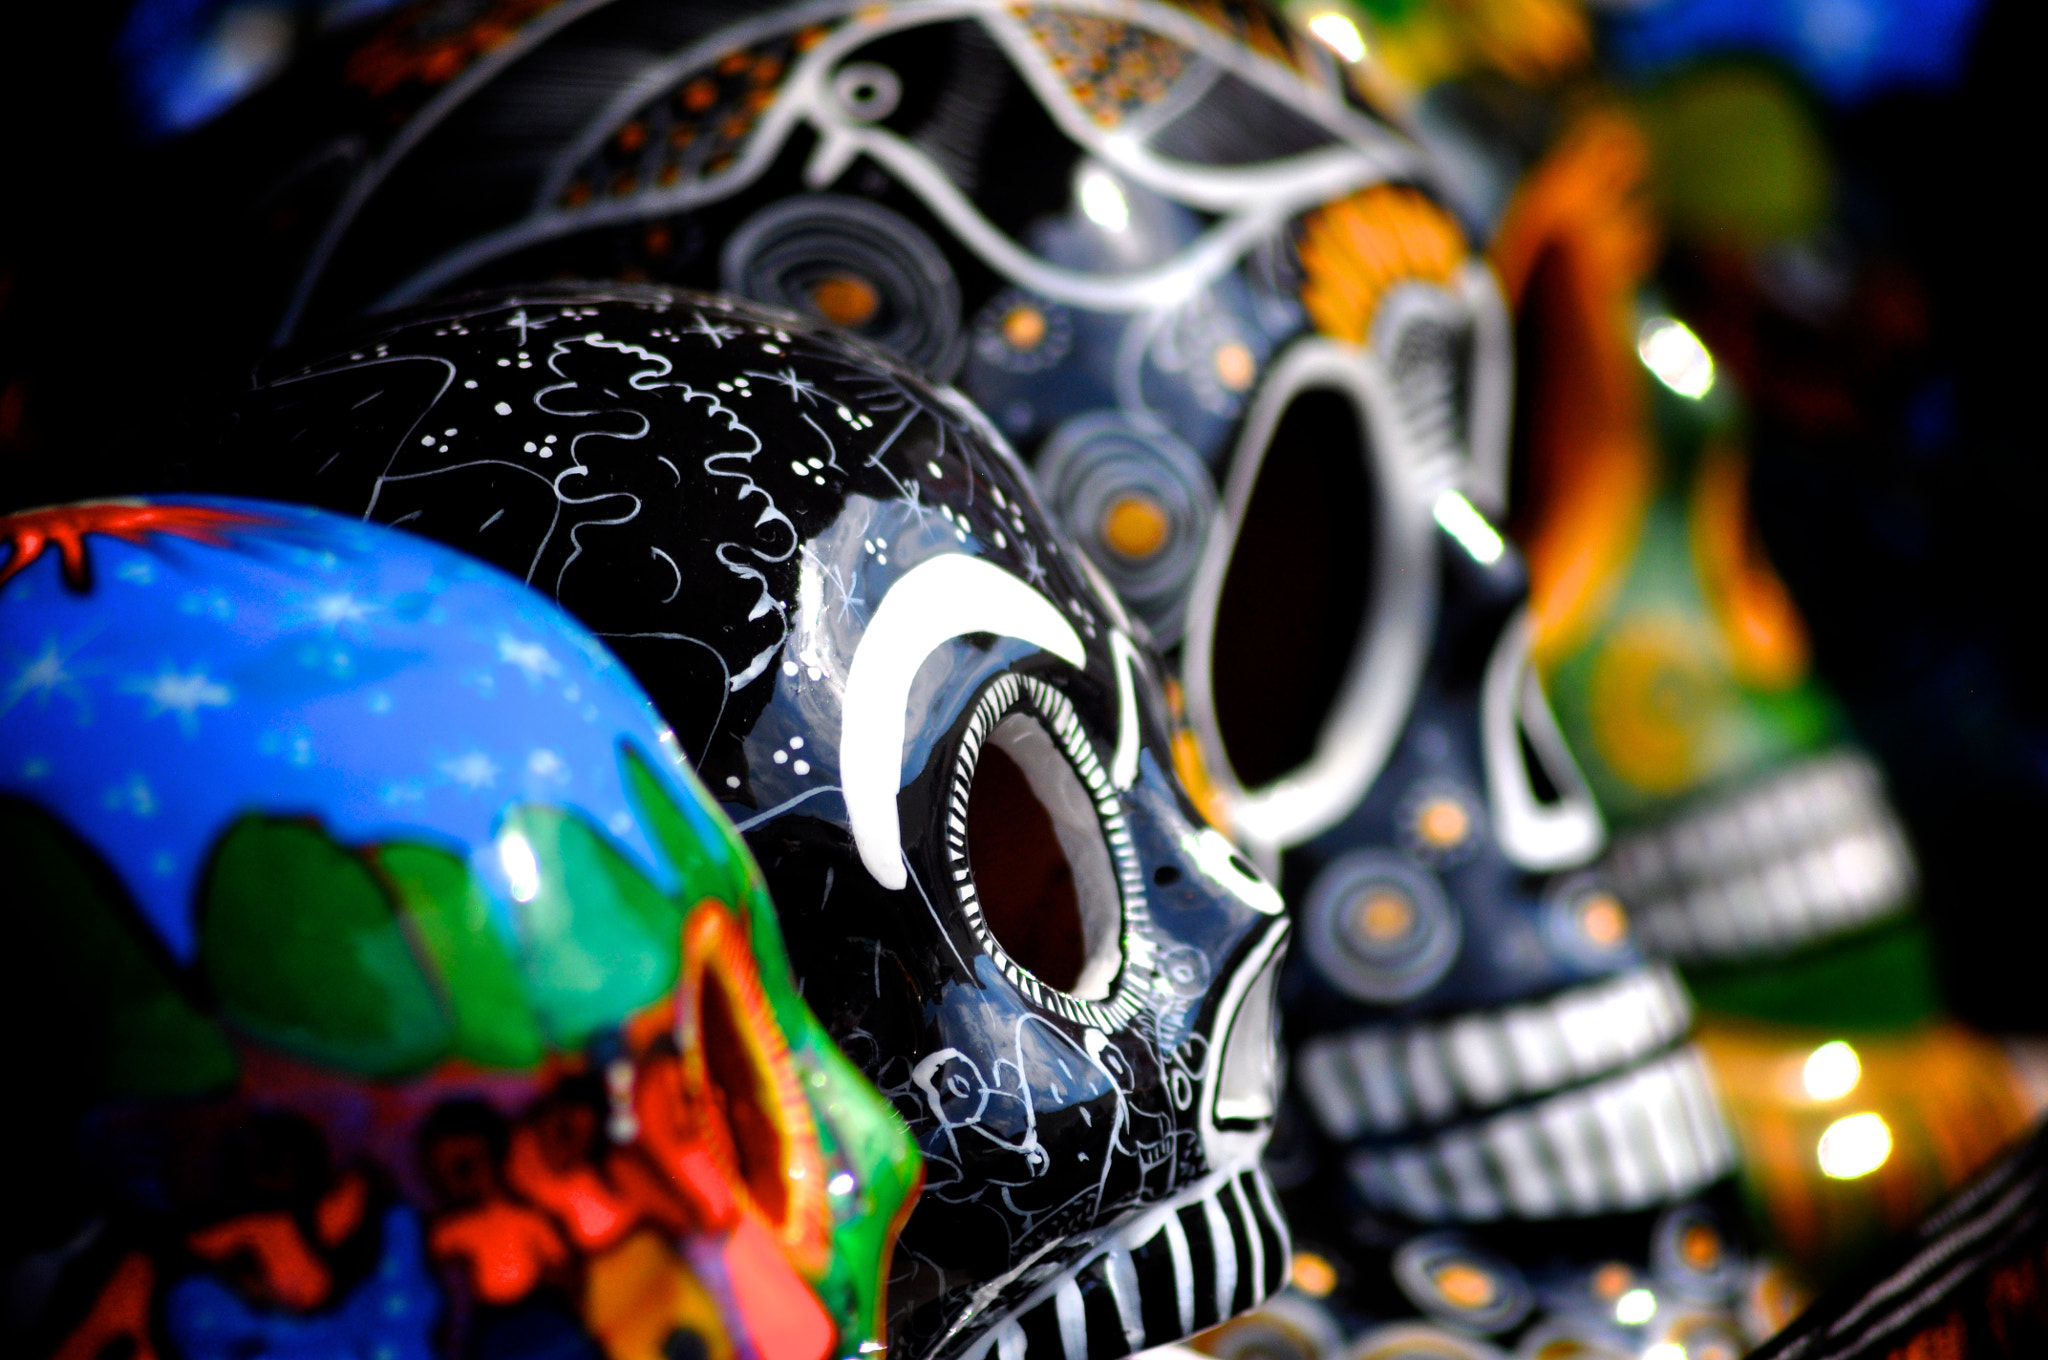 Photograph skulls of colors by Angel Hernandez on 500px